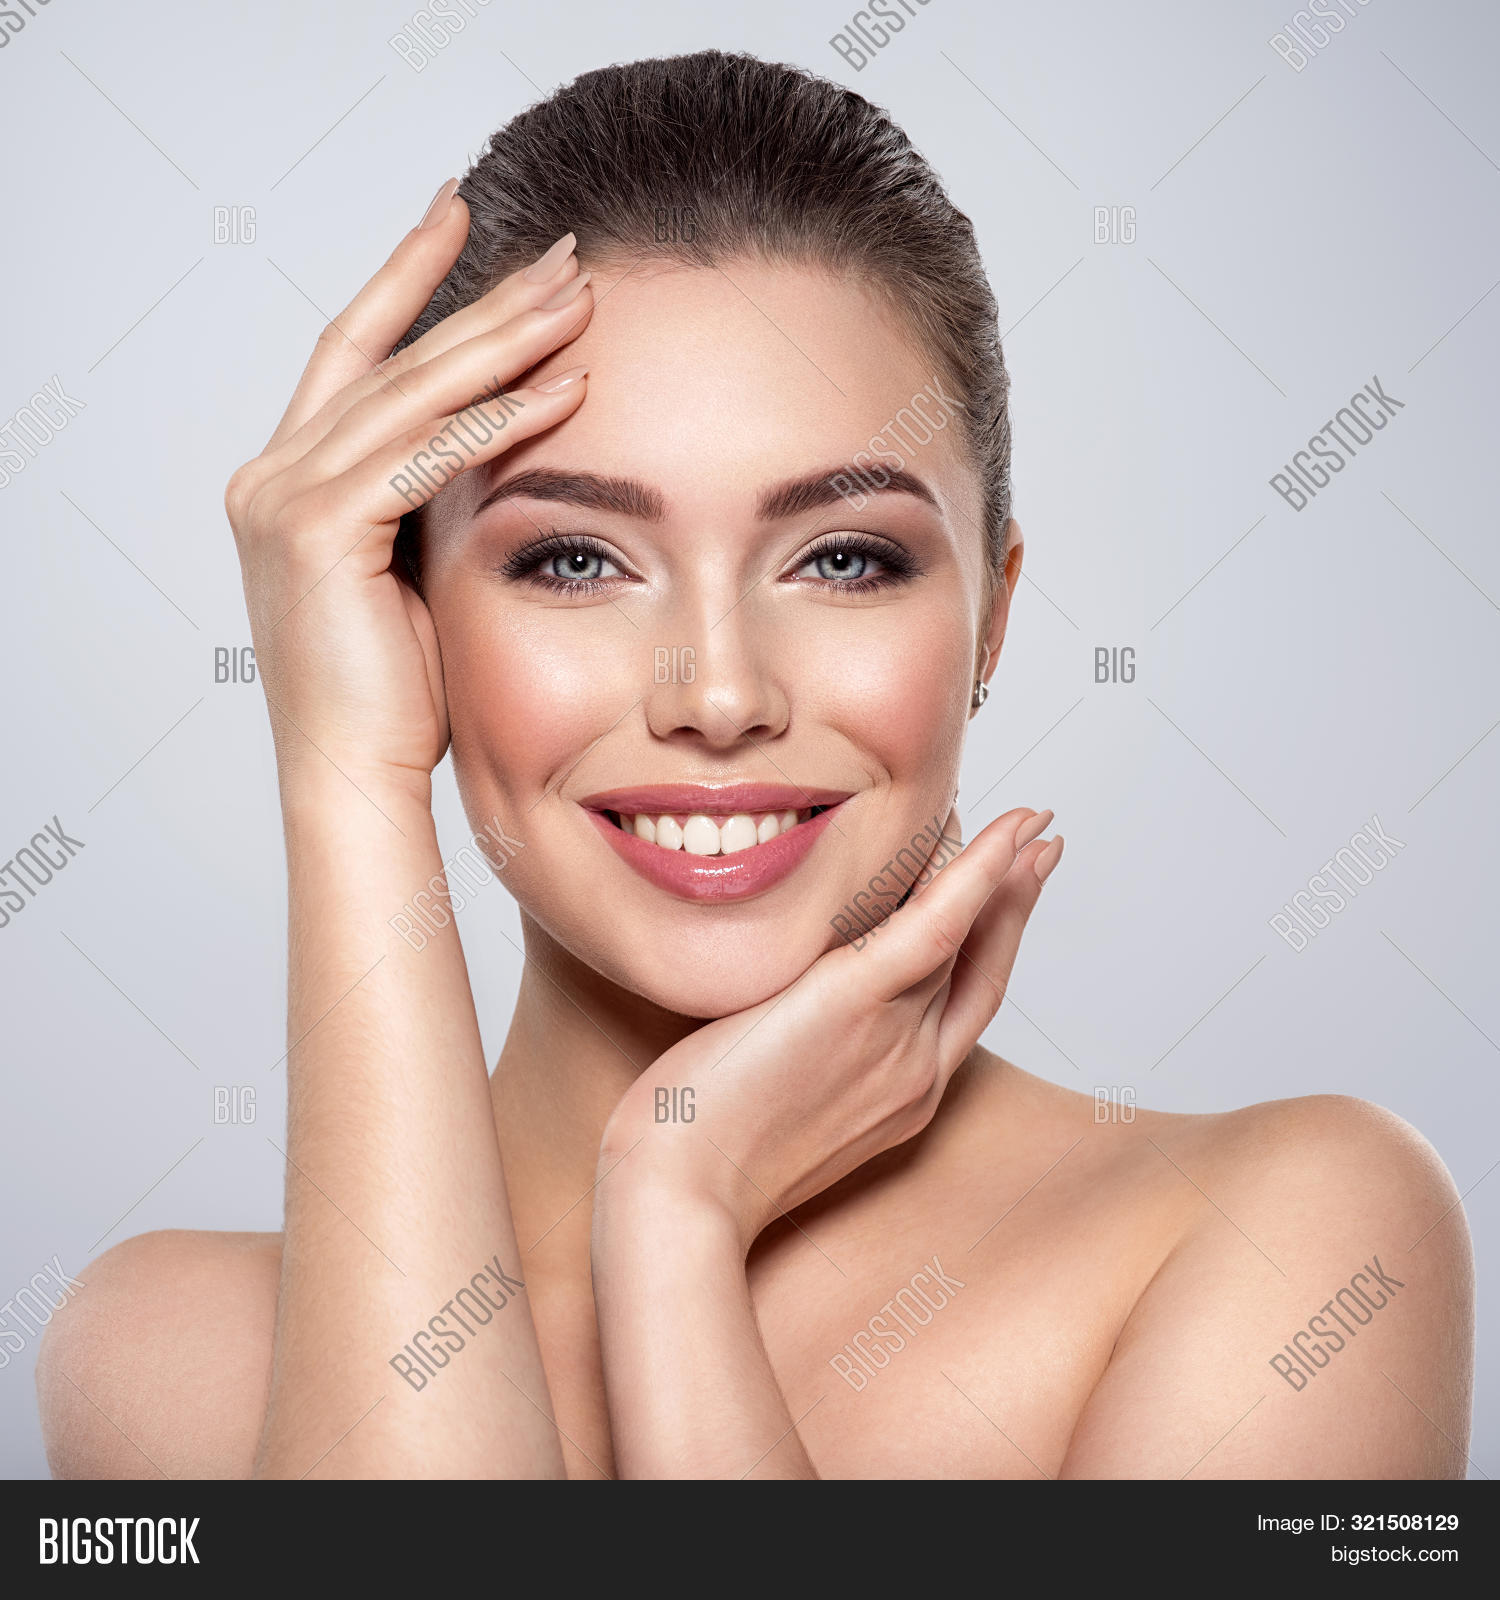 adult,attractive,beautiful,beauty,blue eyes,brunette,care,caucasian,cheerful,clean,face,female,fresh,girl,hand,hands,happy,health,isolated,one,pamper,pampering,portrait,pose,posing,pretty,skin,skin care,smile,smiling,smokey,smokey eyes,smokey makeup,studio,touch,white,white background,woman,young